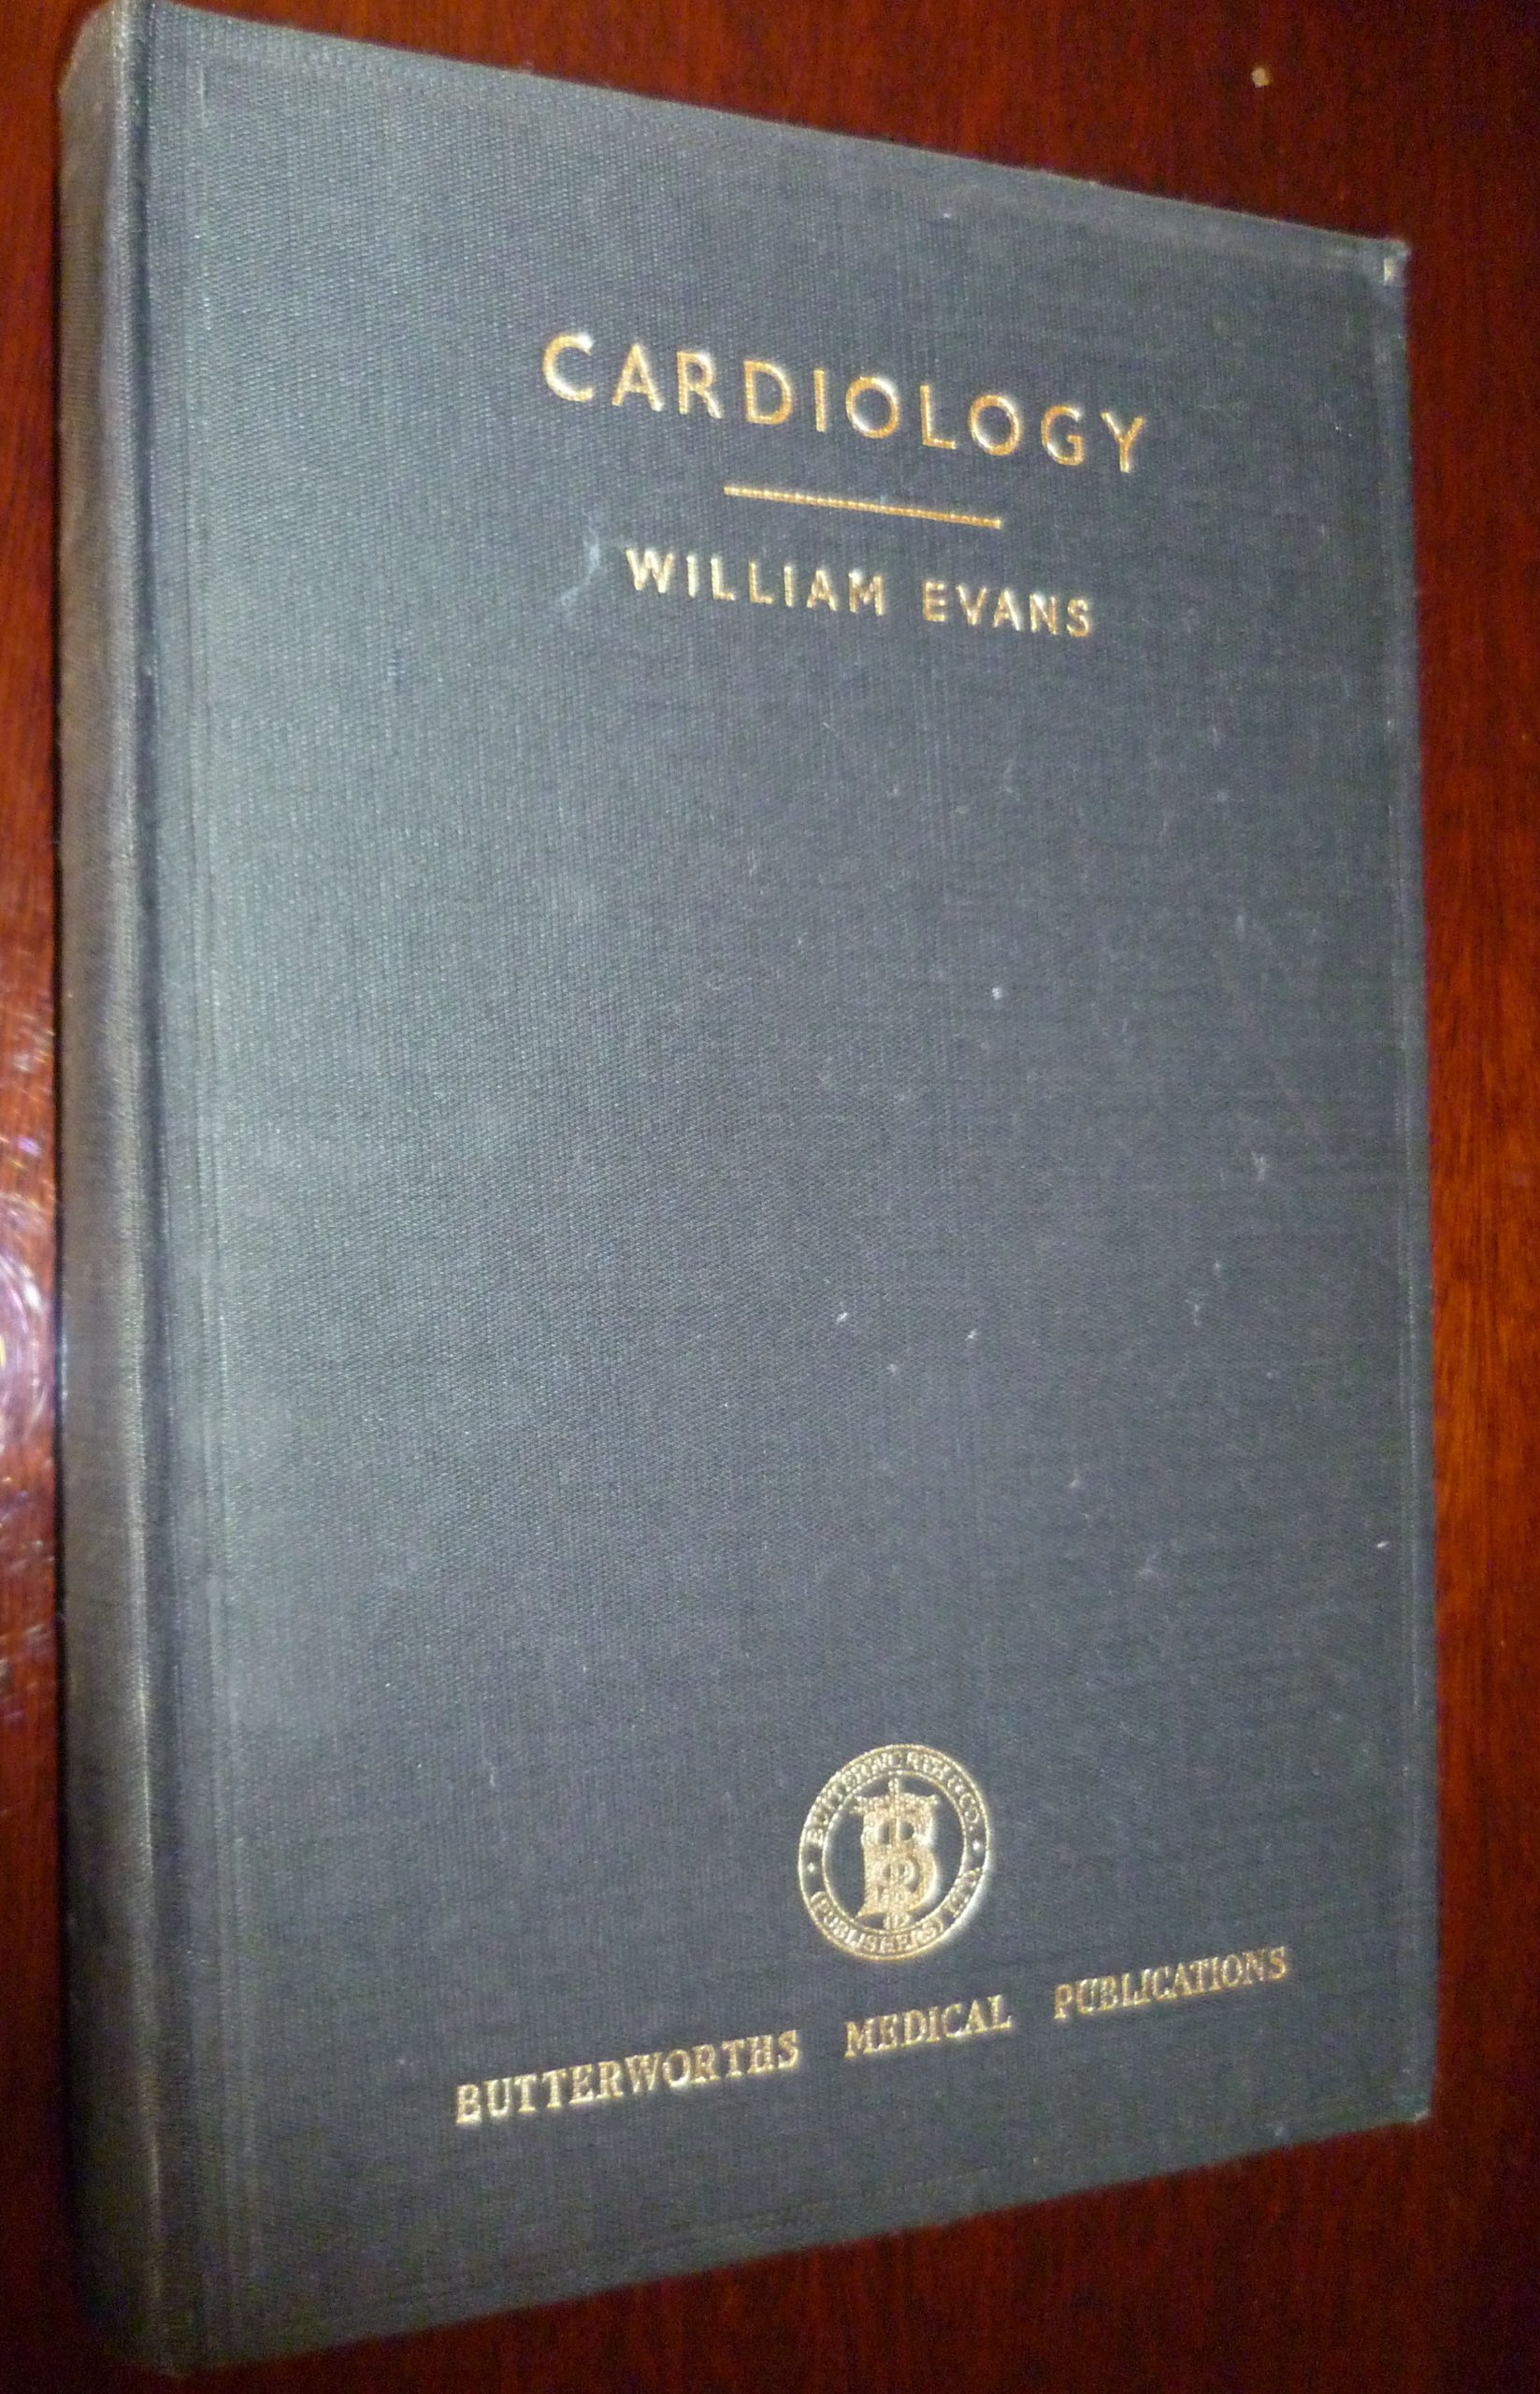 Cardiology by William Evans, First Edition 1948: William